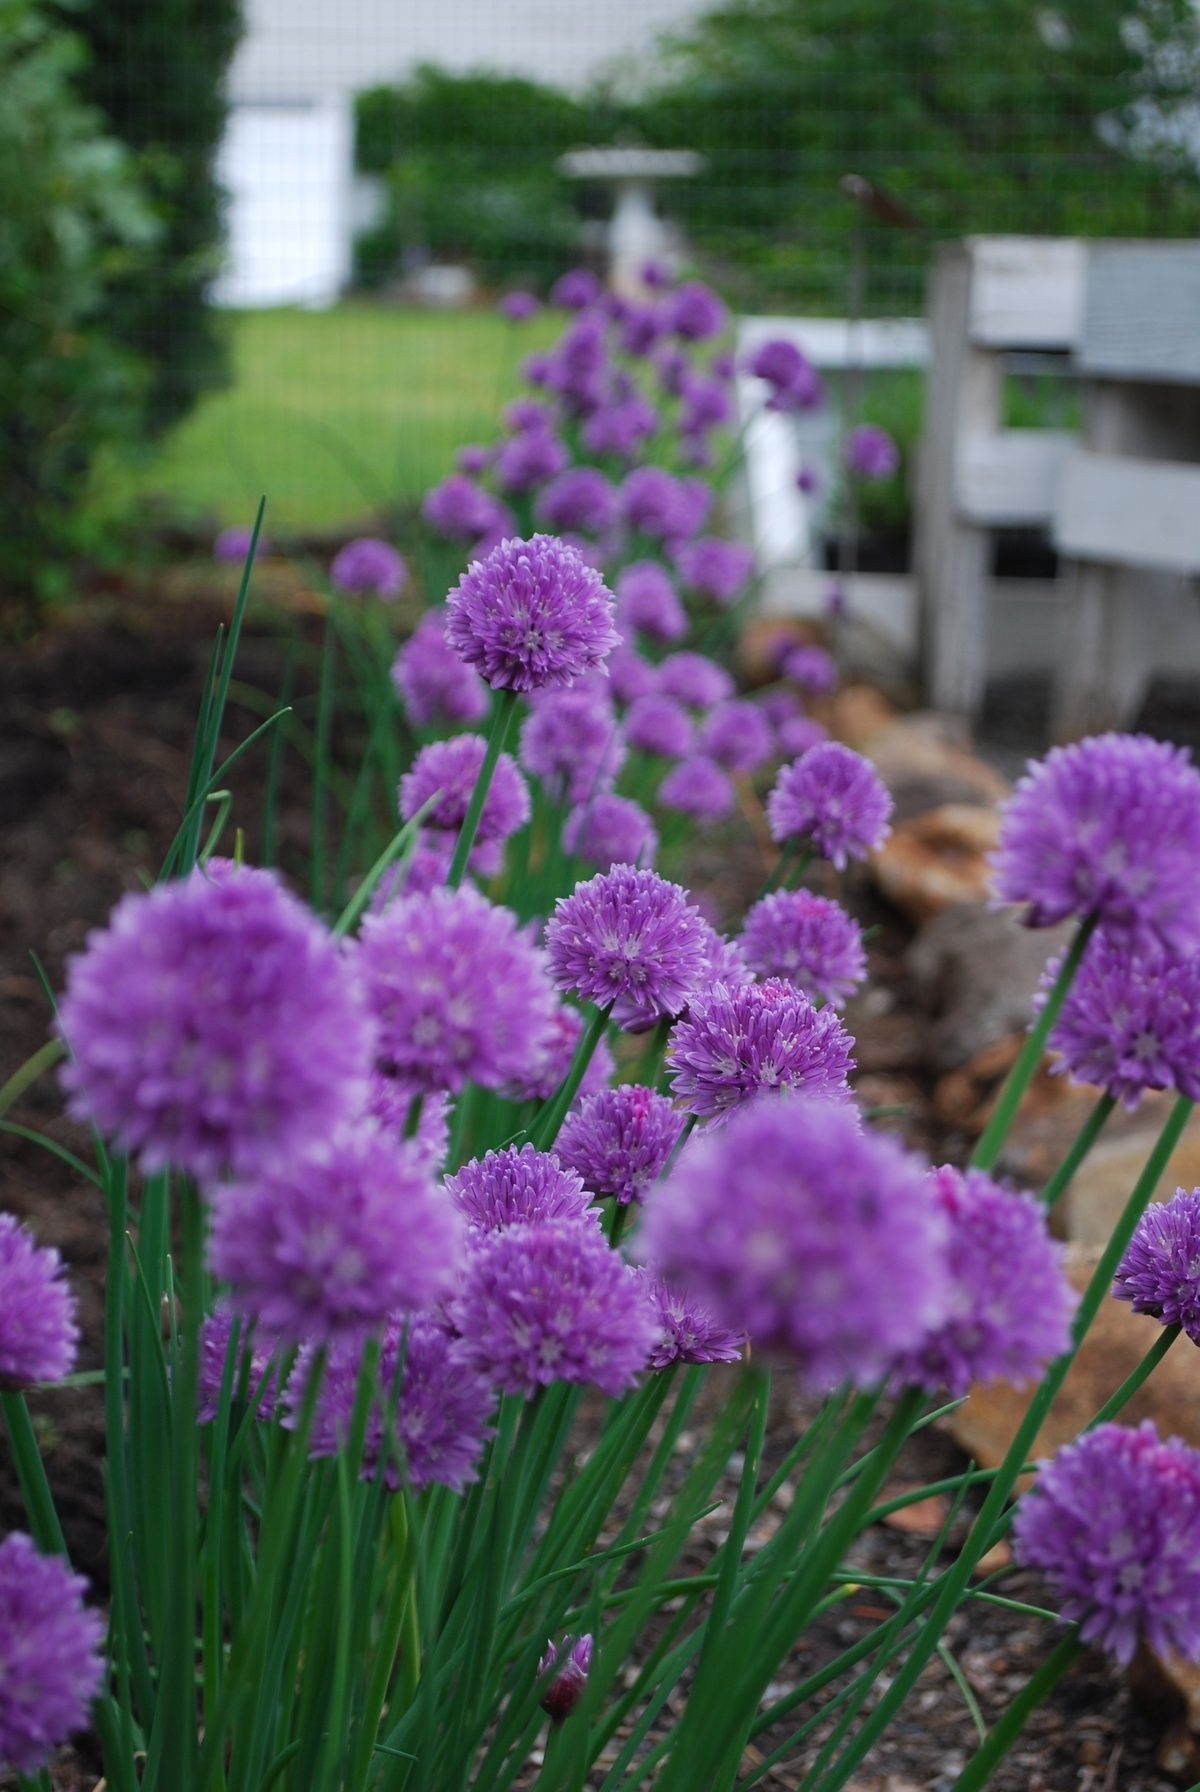 chives, need to remember to plant these near alliums